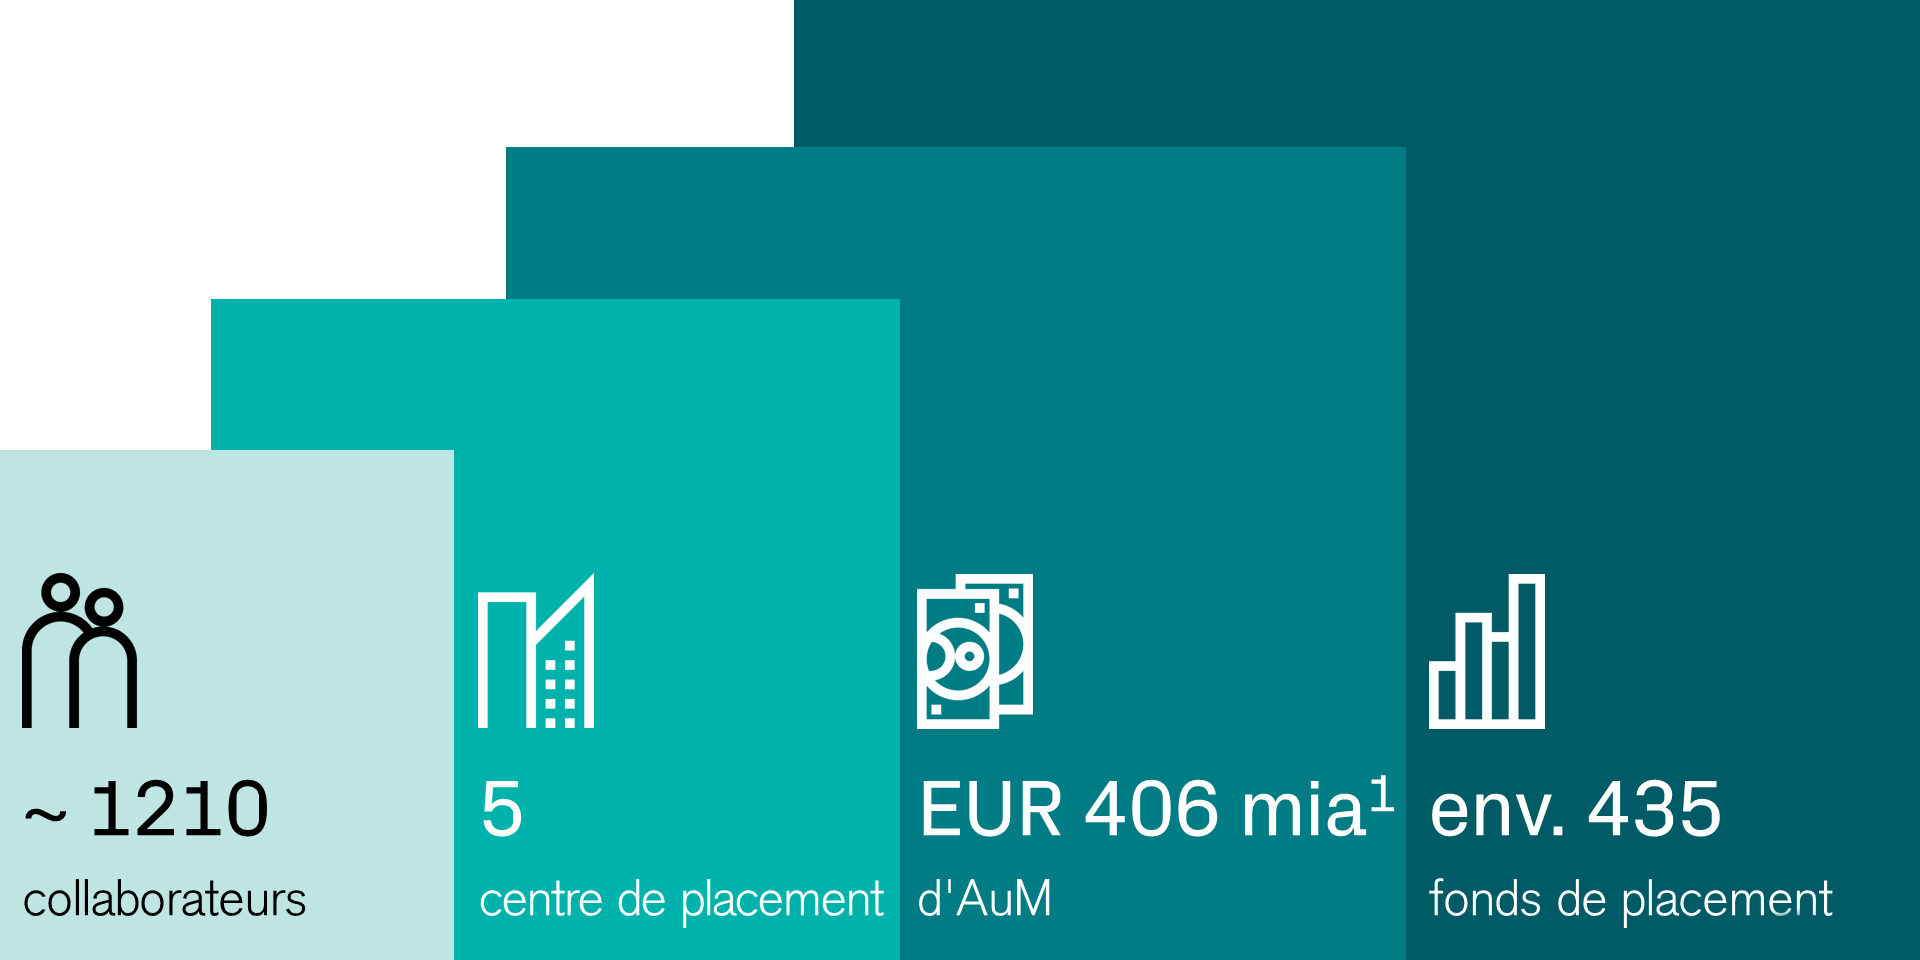 Asset Management en chiffres: 1210 collaborateurs, 5 centre de placement, EUR 406 mia AuM, env. 435 fonds de placement.